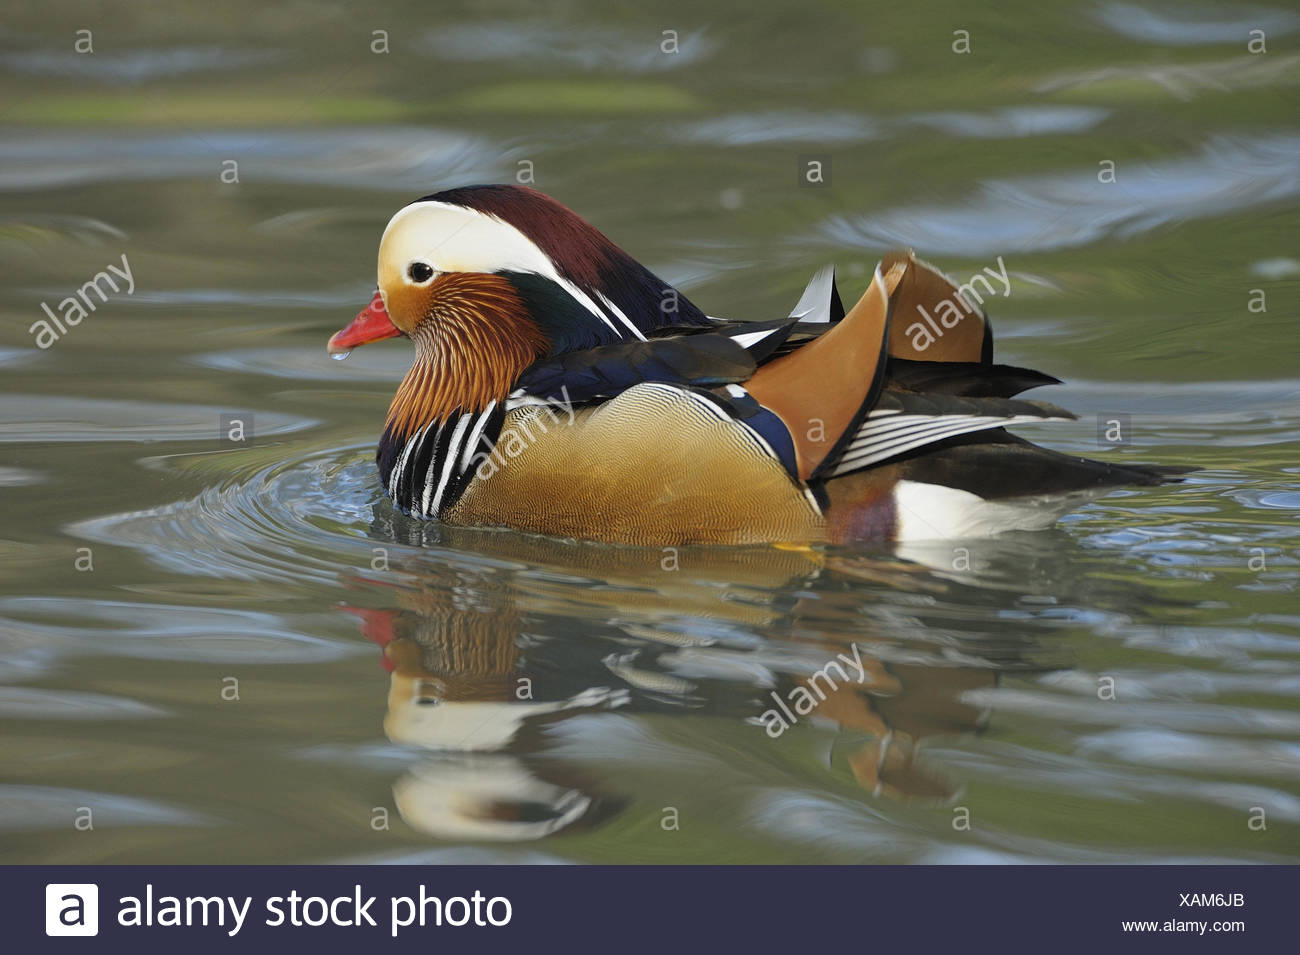 Mandarin duck, Aix galericulata, male, water, game park, animal park, waters, animals, wild animals, birds, water birds, goose's birds, anatids, brightness ducks, Asian, East Asian, swimming ducks, ducks, drake, little man, manly, plumage, brightly, colourfully, admirably, swim, nature, Wildlife, preview, Stock Photo